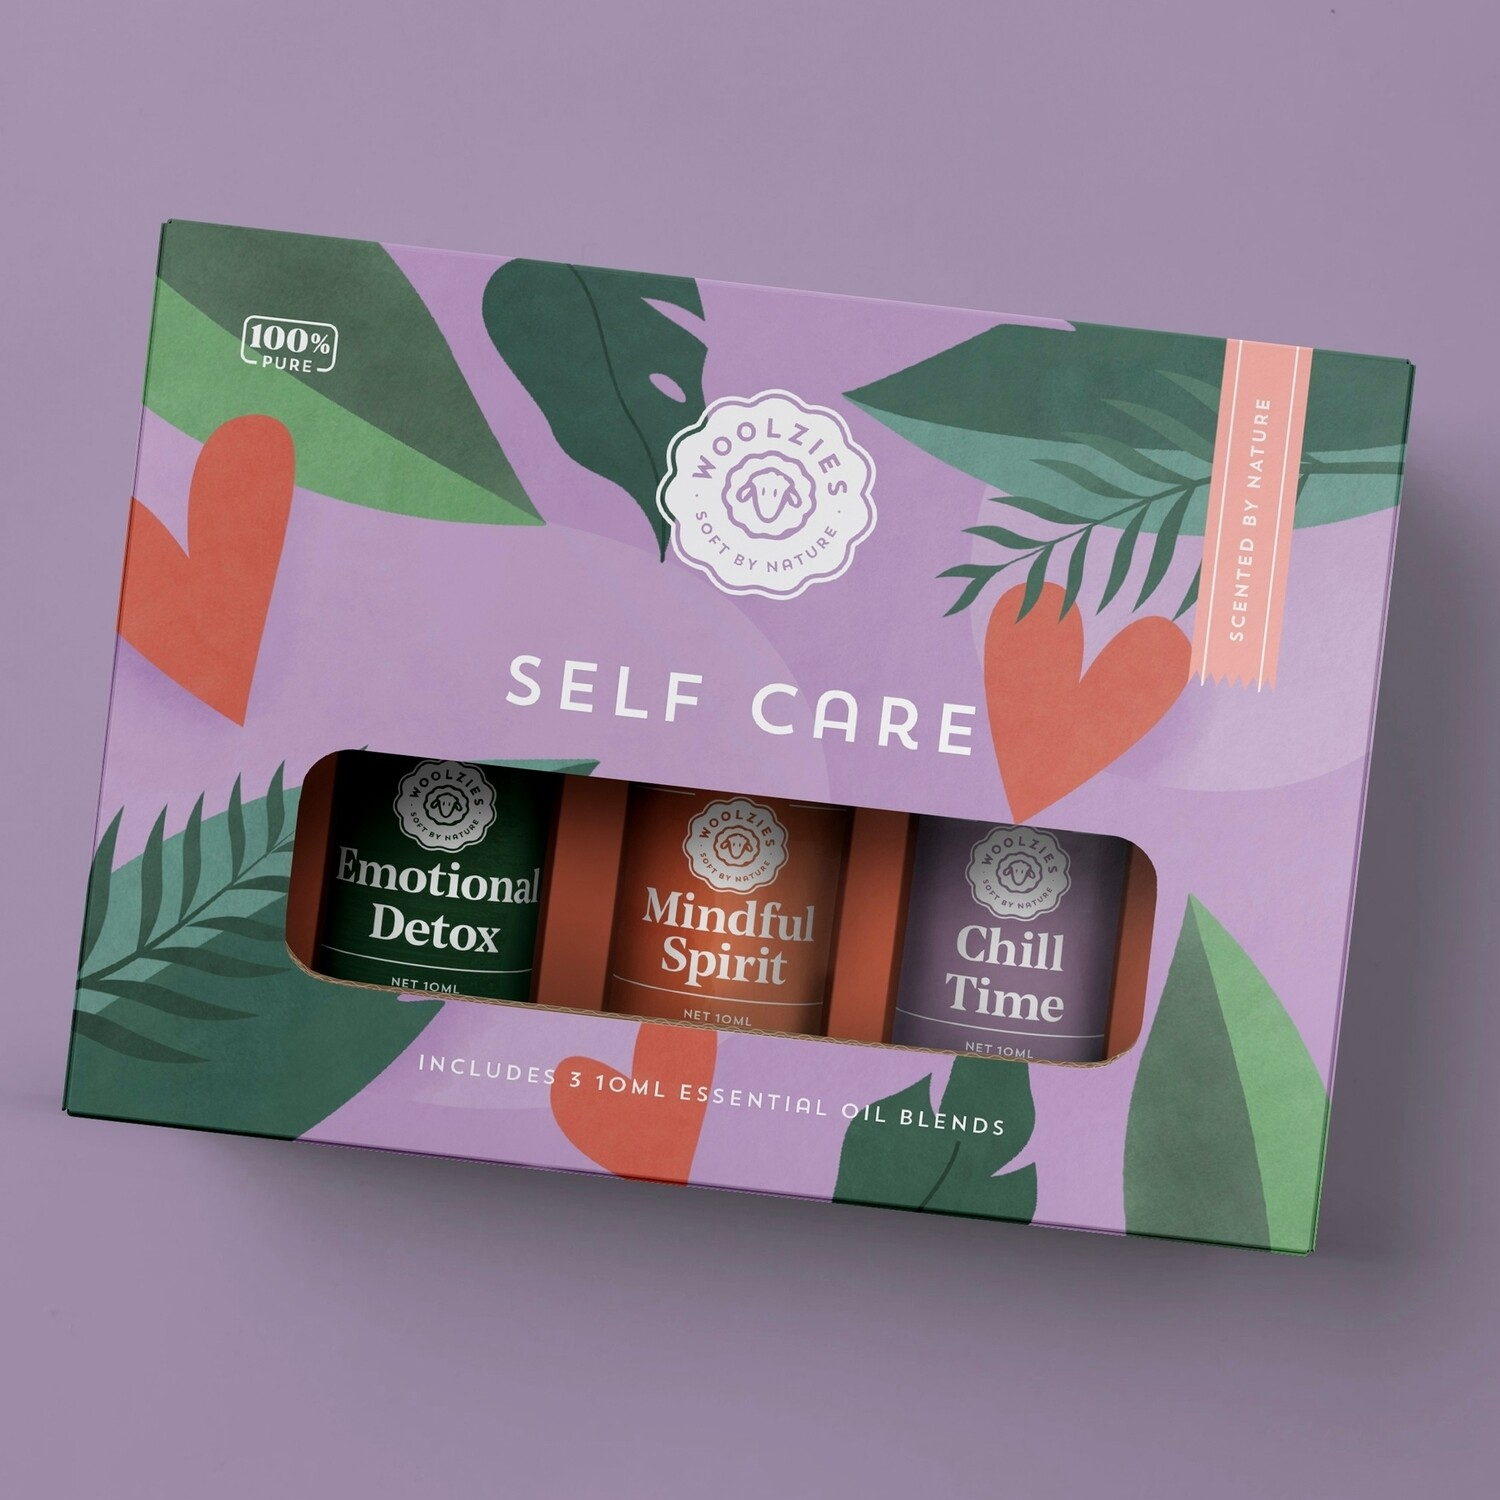 The Self Care Essential Oil Collection